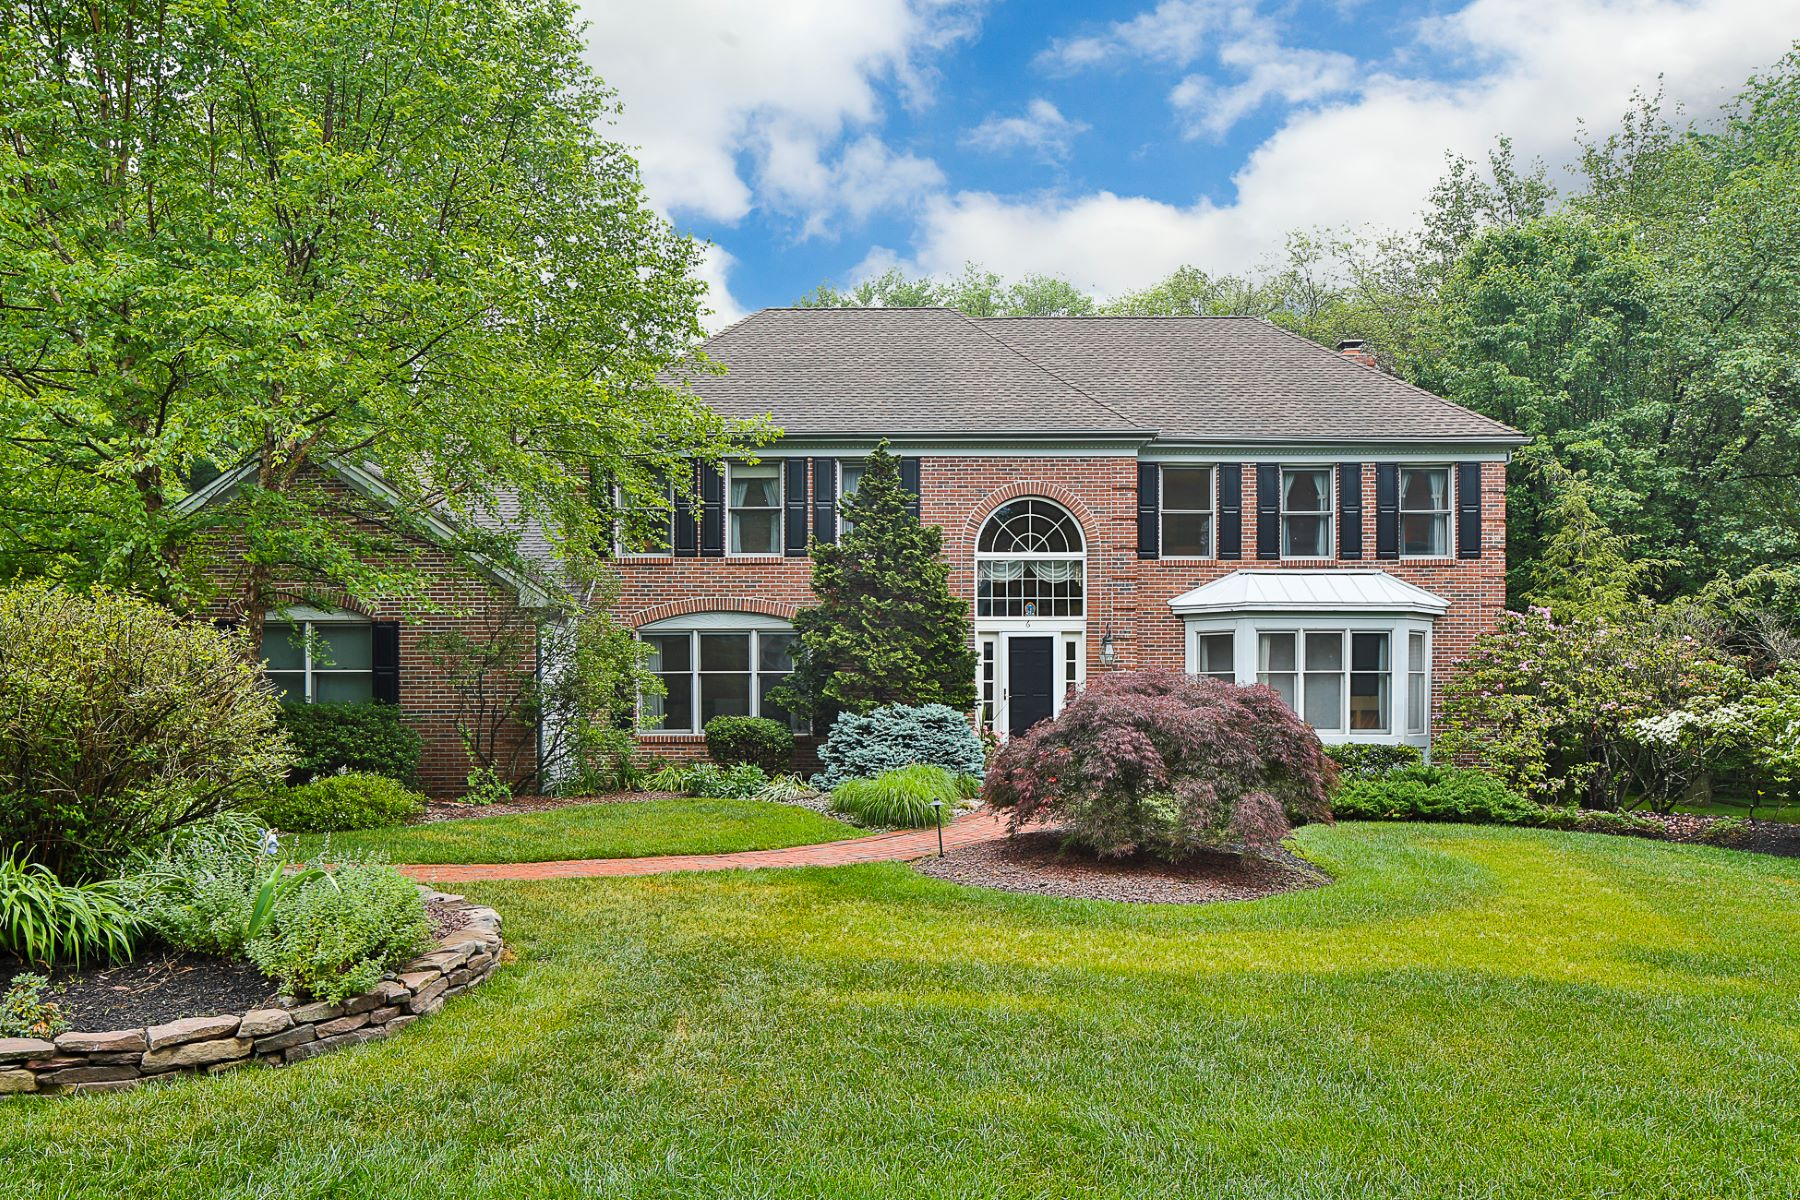 Single Family Homes for Sale at A Most Elegant Host and Haven in Kingsbrook 6 Registry Road, Lawrenceville, New Jersey 08648 United States